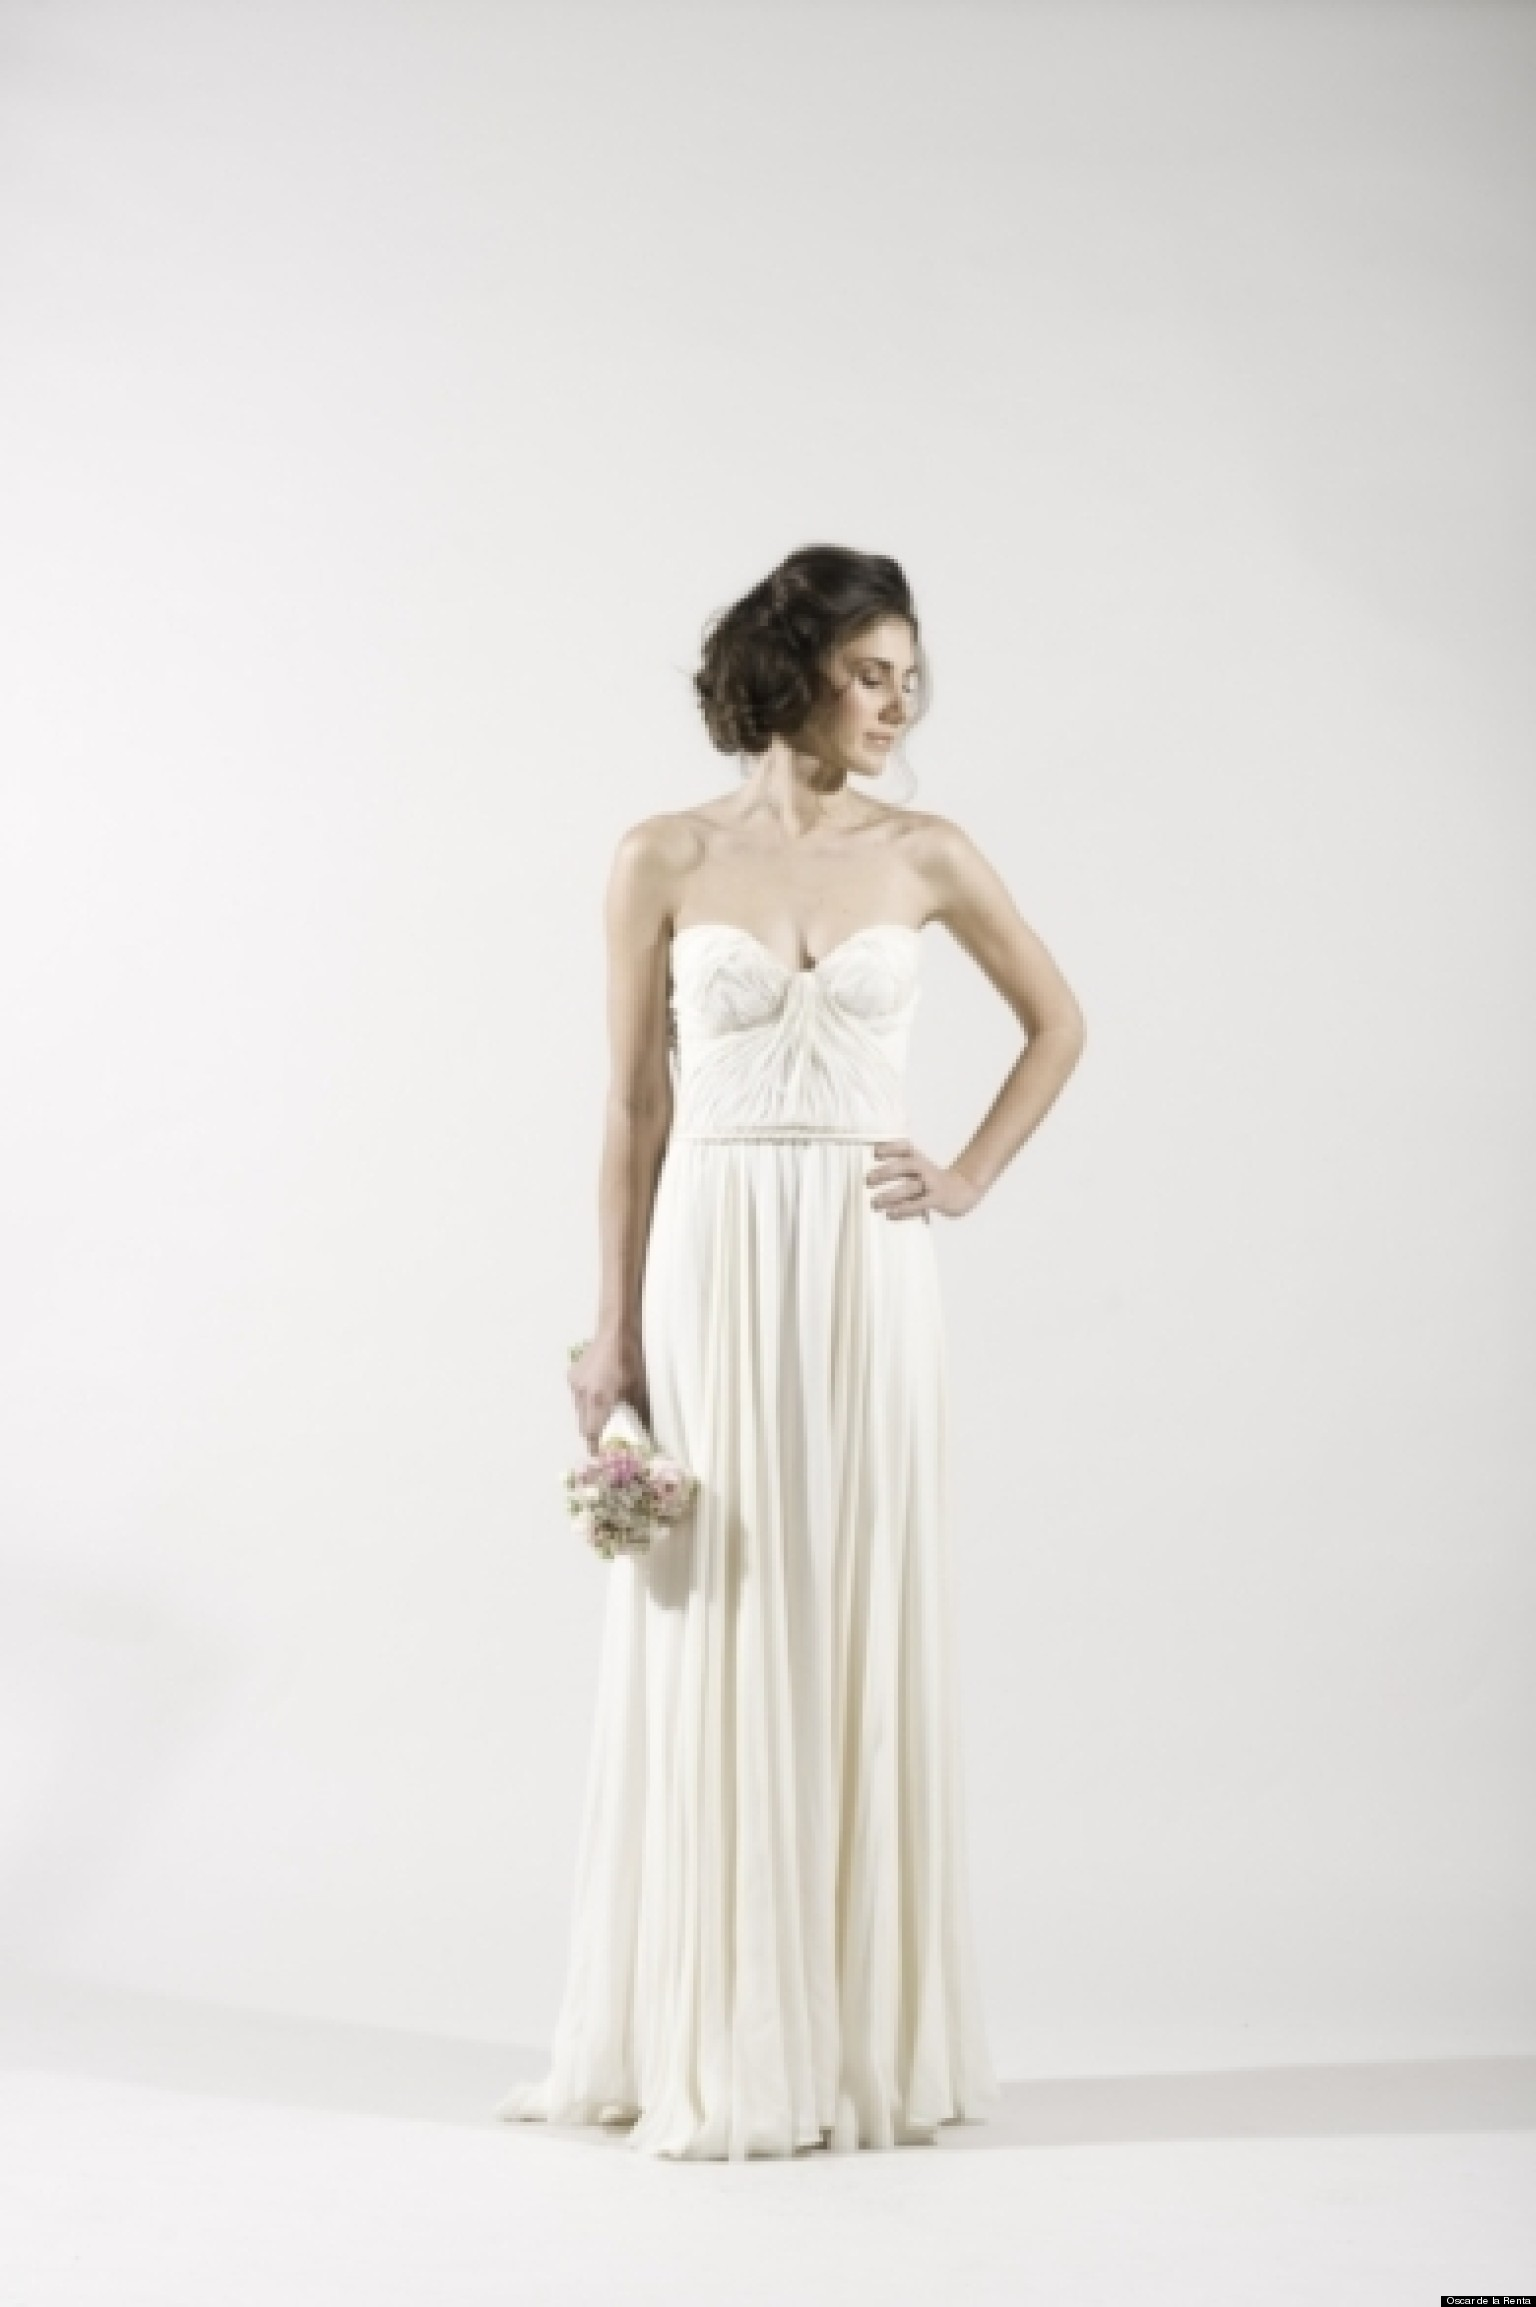 Awesome Grecian Goddess Wedding Dress Contemporary - Styles & Ideas ...